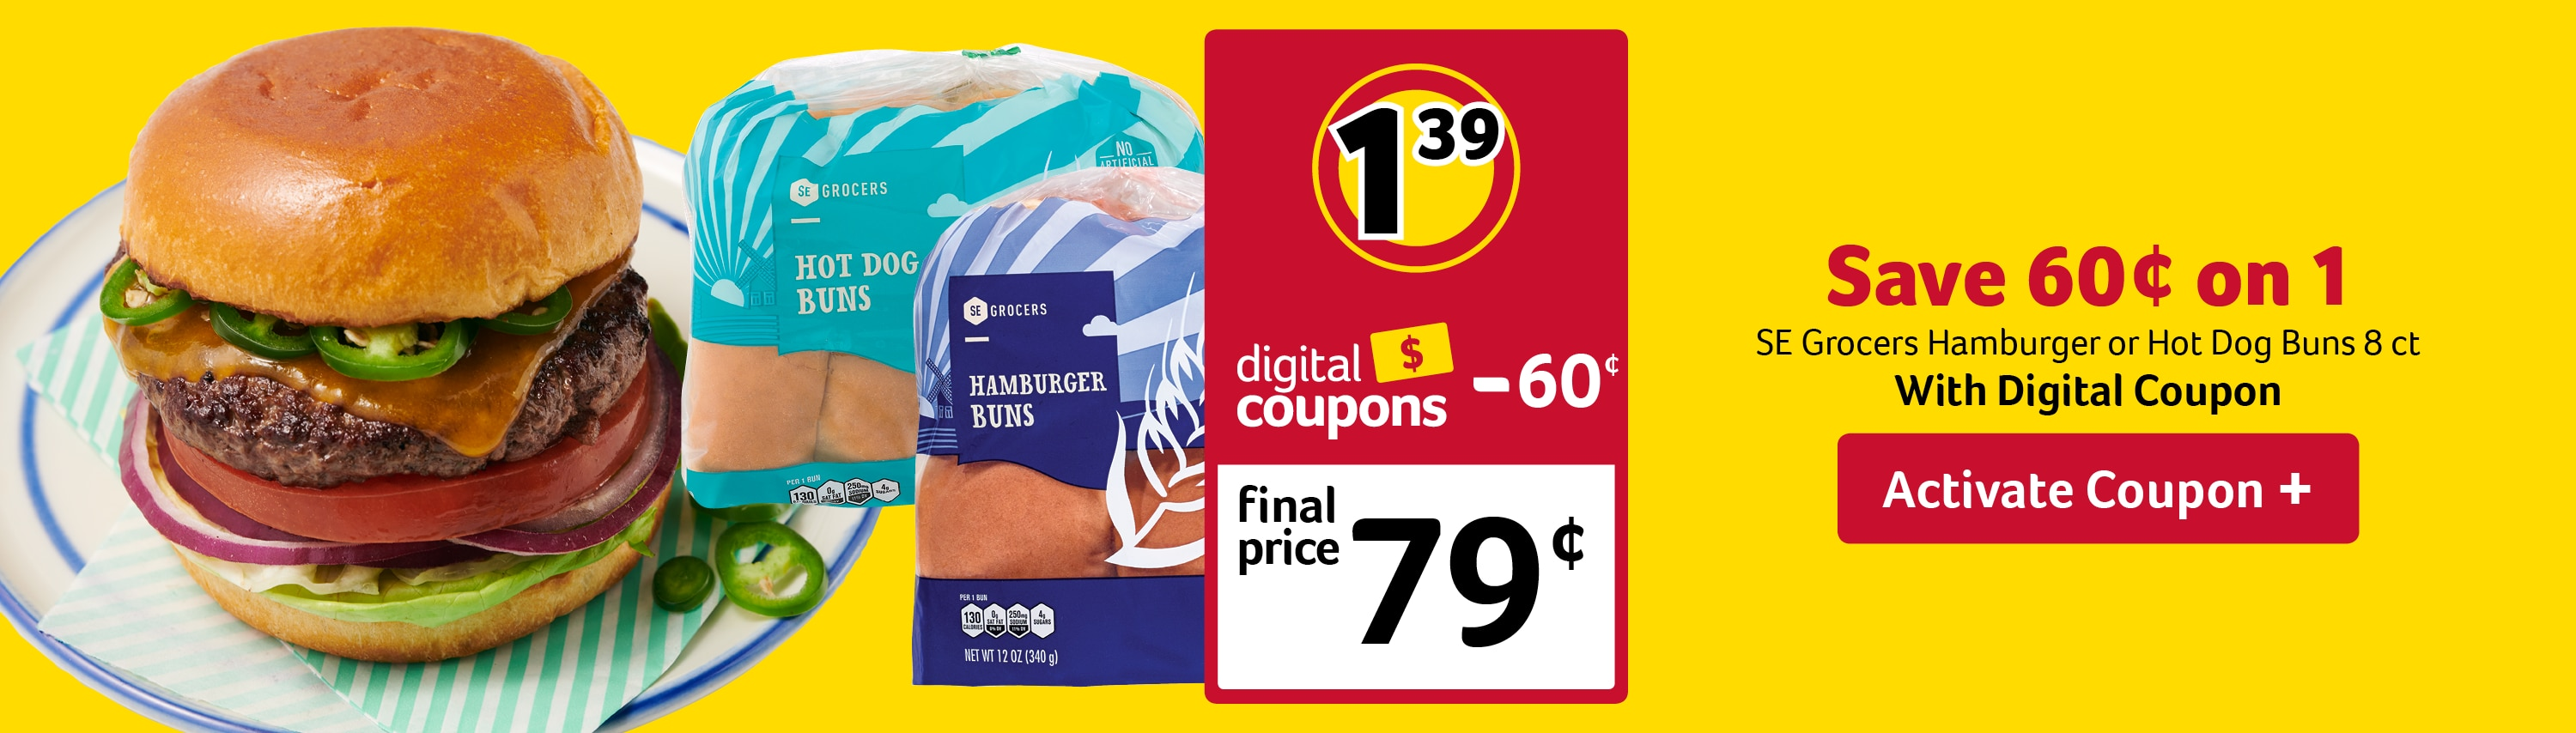 Save 60 cents on 1 pack of S E Grocers hotdog or hamburger buns - Activate Coupon